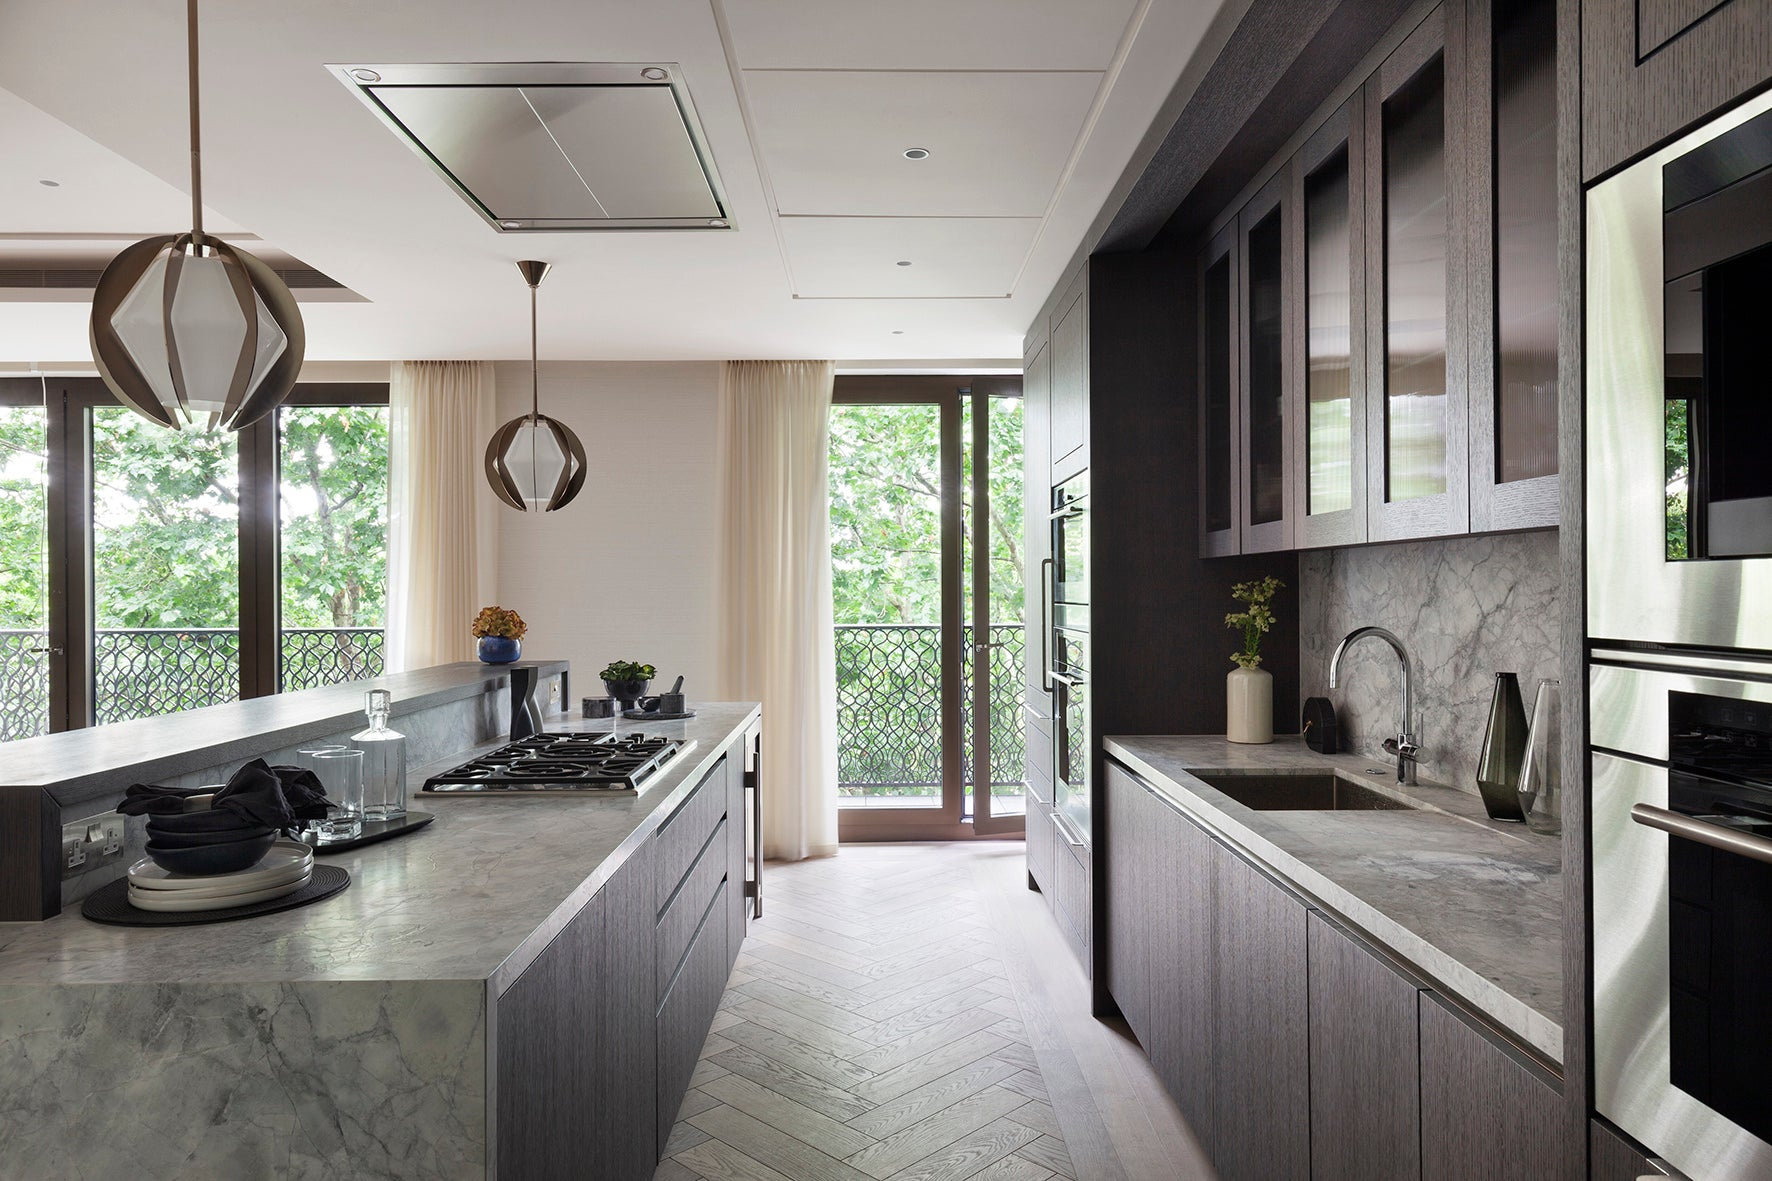 Kitchen - Elicyon design the interiors for the Chelsea Barracks show residence in London